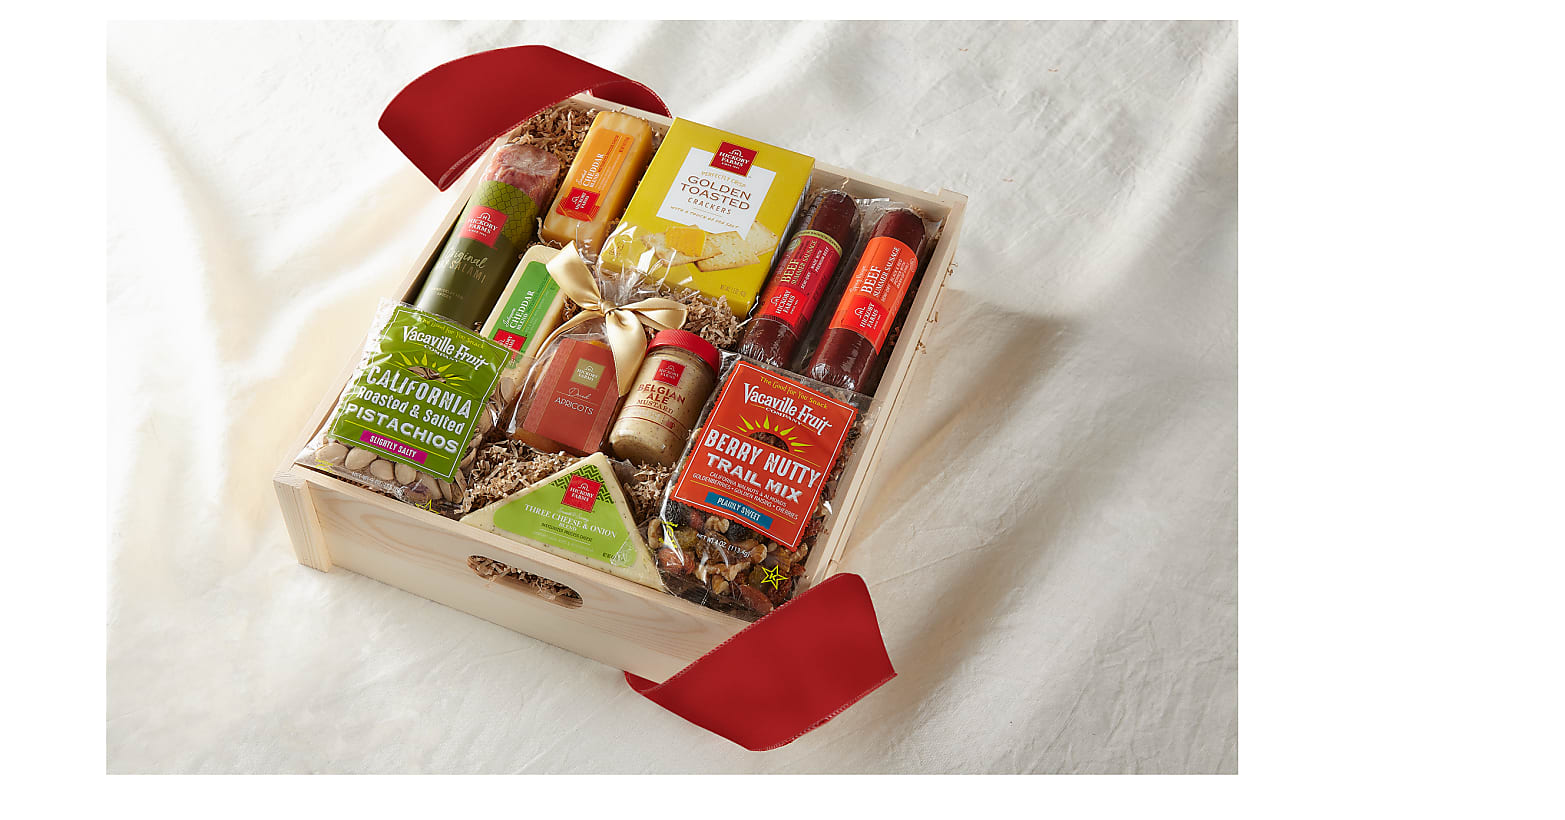 Valentine's Day Charcuterie Gift Crate - Image 2 Of 2